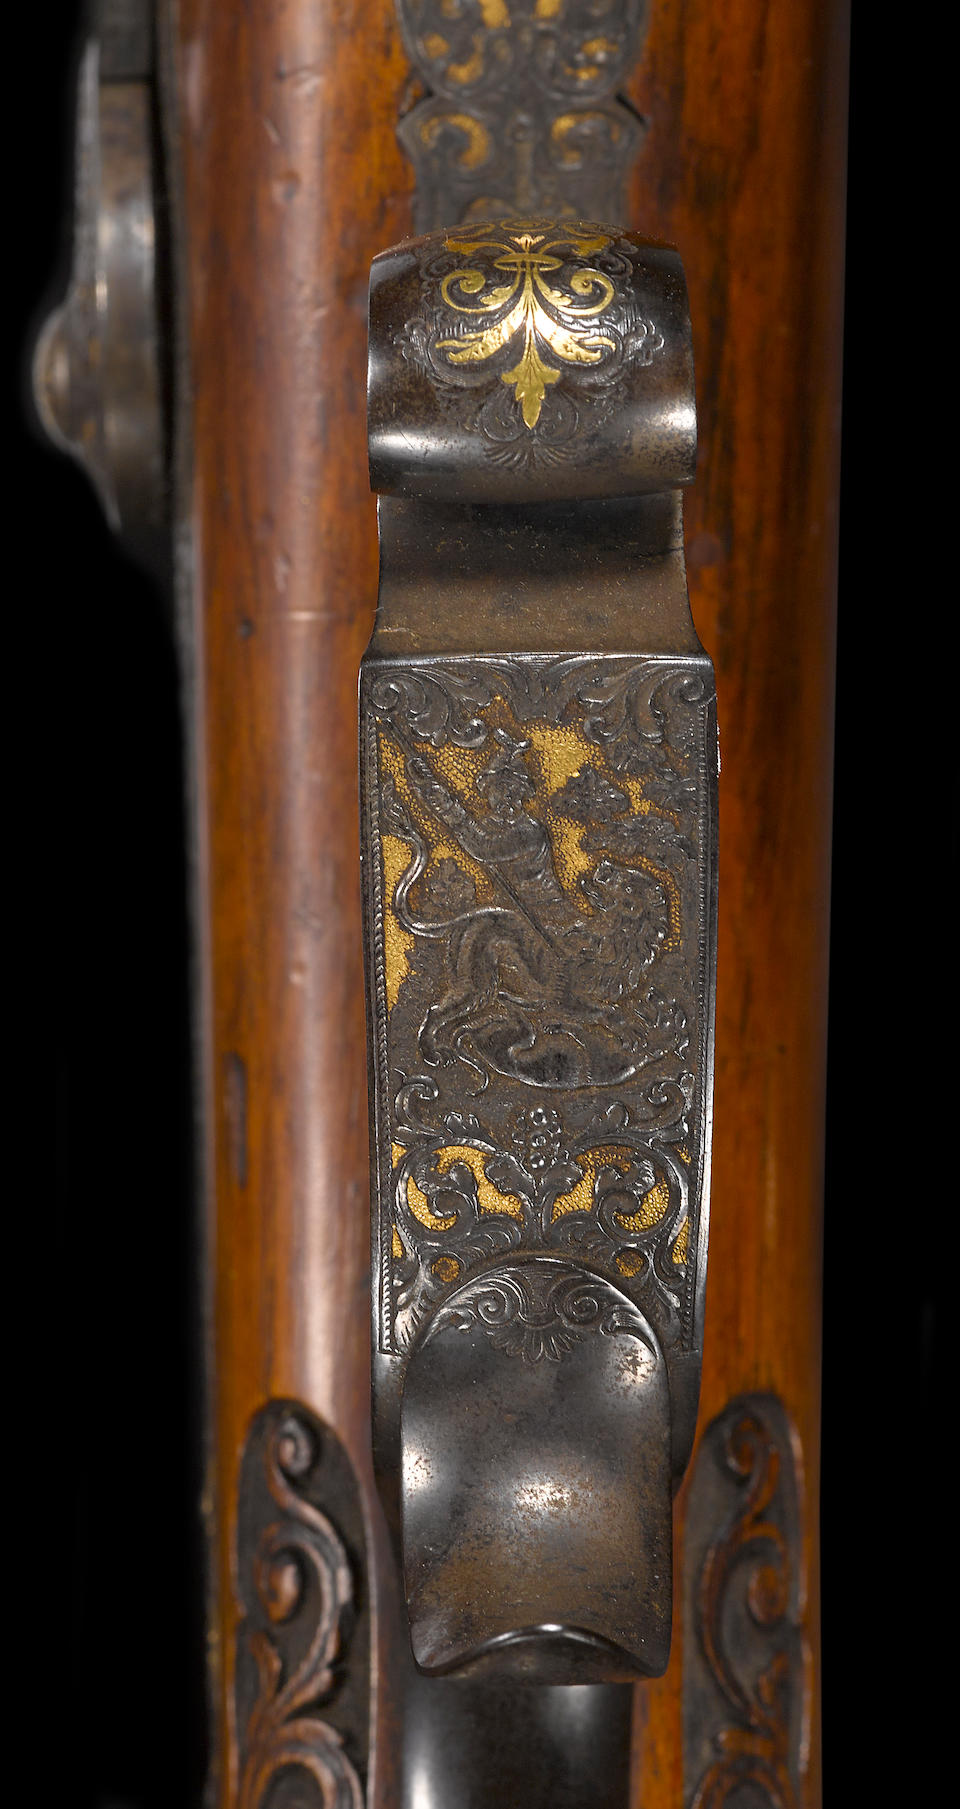 A fine German percussion rifle by W. Pfeuffer of Stuttgart -Select US Arms Type-